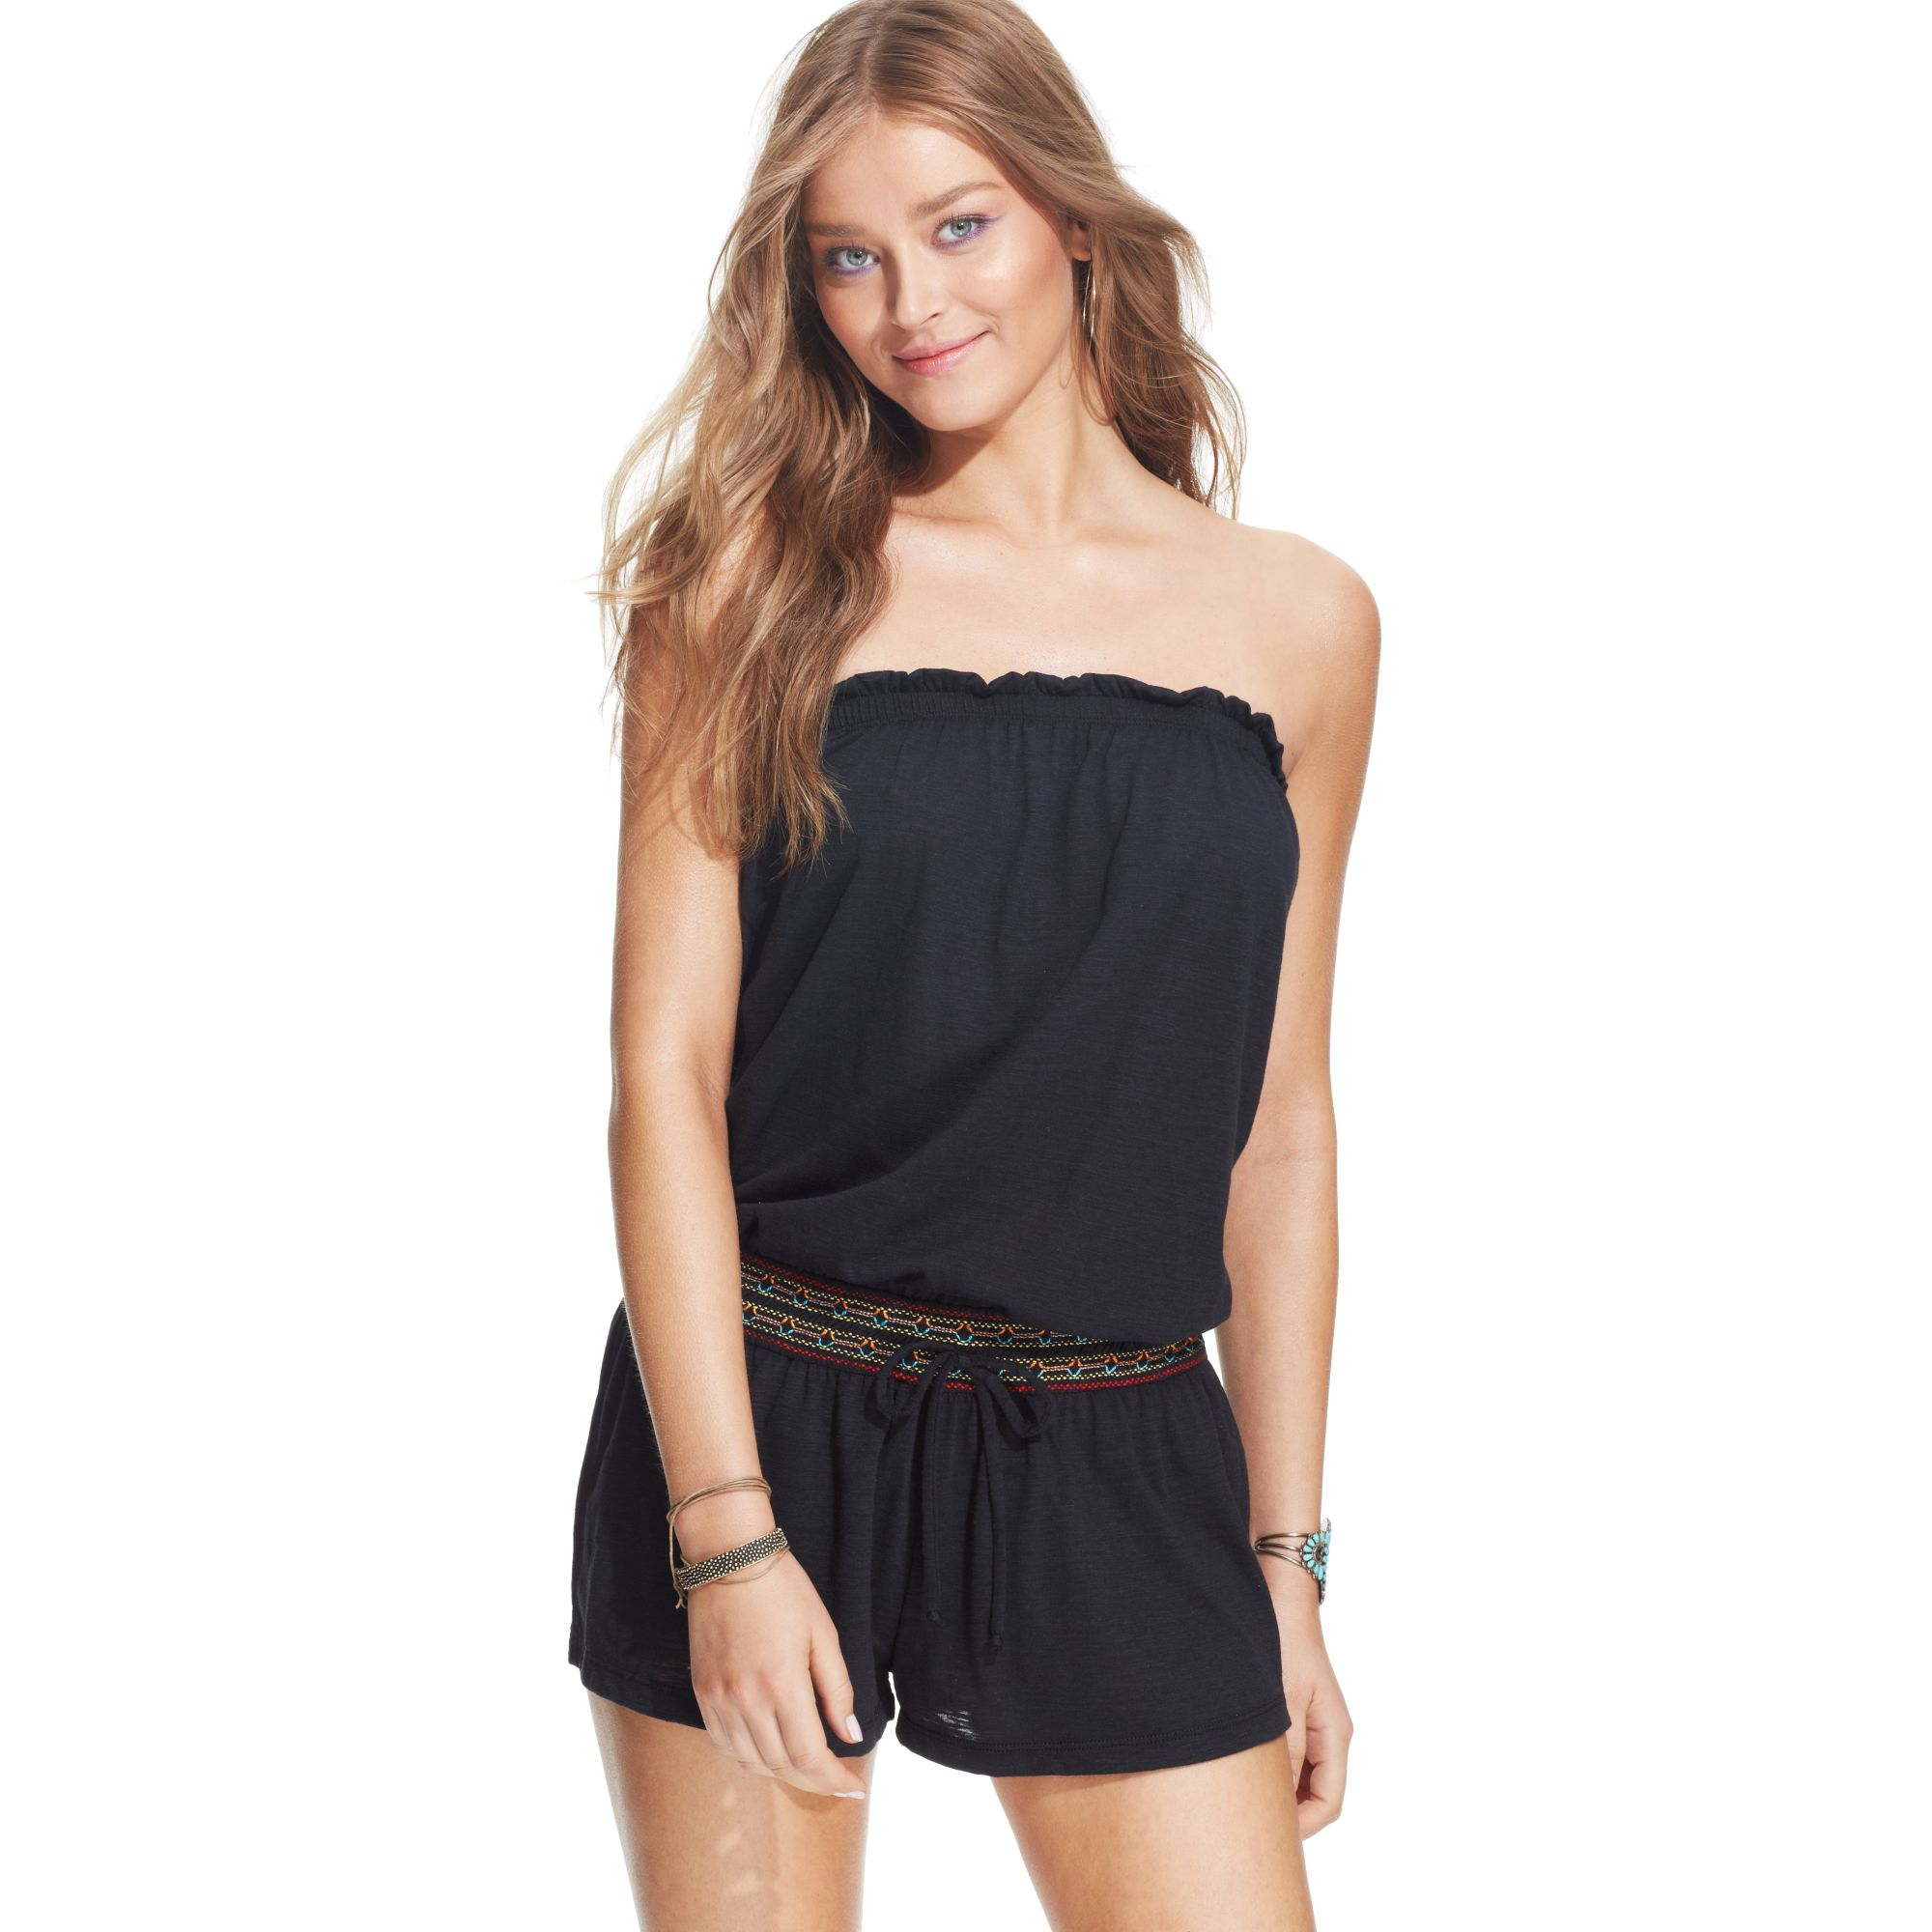 b69fb1e9376d0 Lyst - Lucky Brand Sleeveless Bandeau Romper Cover Up in Black